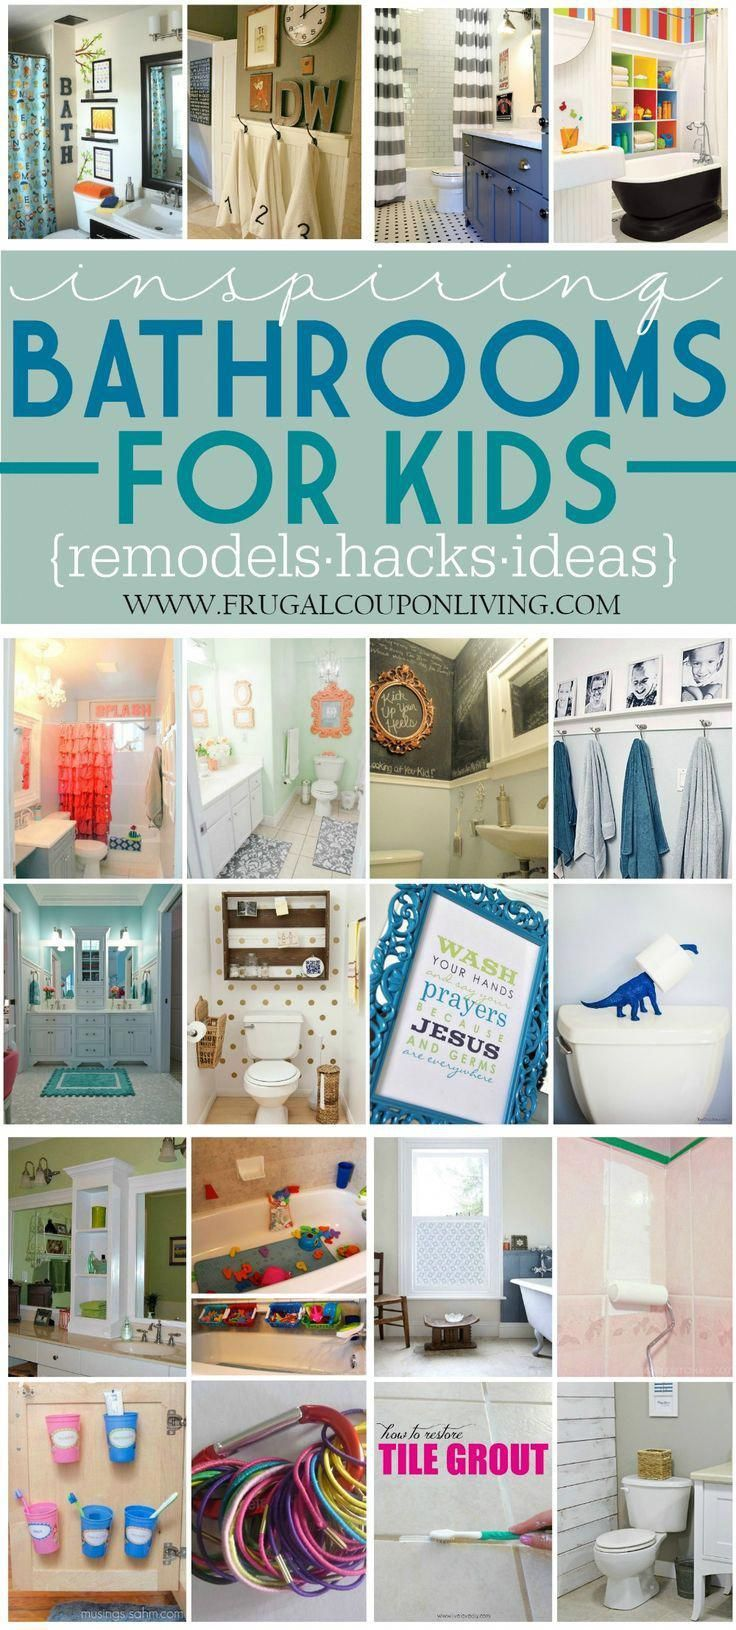 awesome Boy And Girl Bathroom Decorating Ideas Part - 2: Inspiring Kids Bathrooms - Decorations, Remodels and Hacks on Frugal Coupon  Living. Girls Bathroom Ideas, Boys Bathroom Ideas, Bathroom Hacks, Bathroom  DIY.